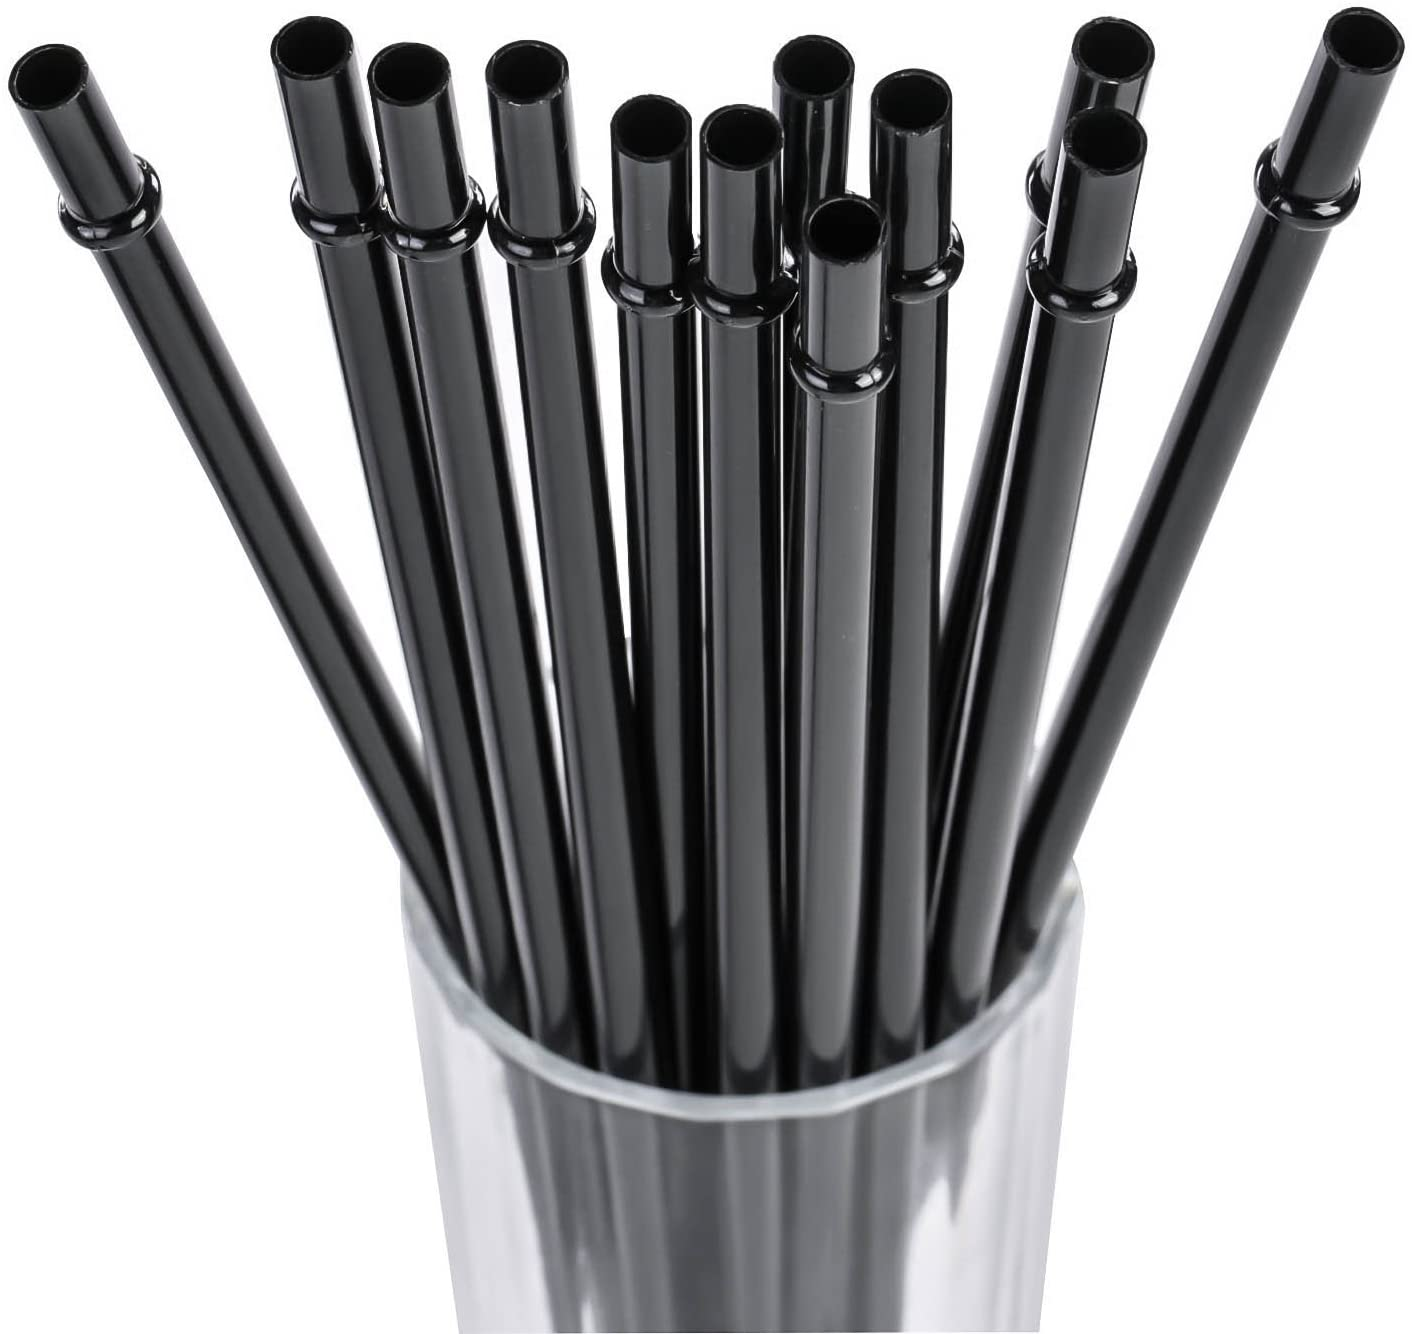 Dakoufish 6 Inch Reusable Plastic Drinking Straws BPA Free 12 Colors-12 Pack Plus Free Cleaning Brush 6inch,12color